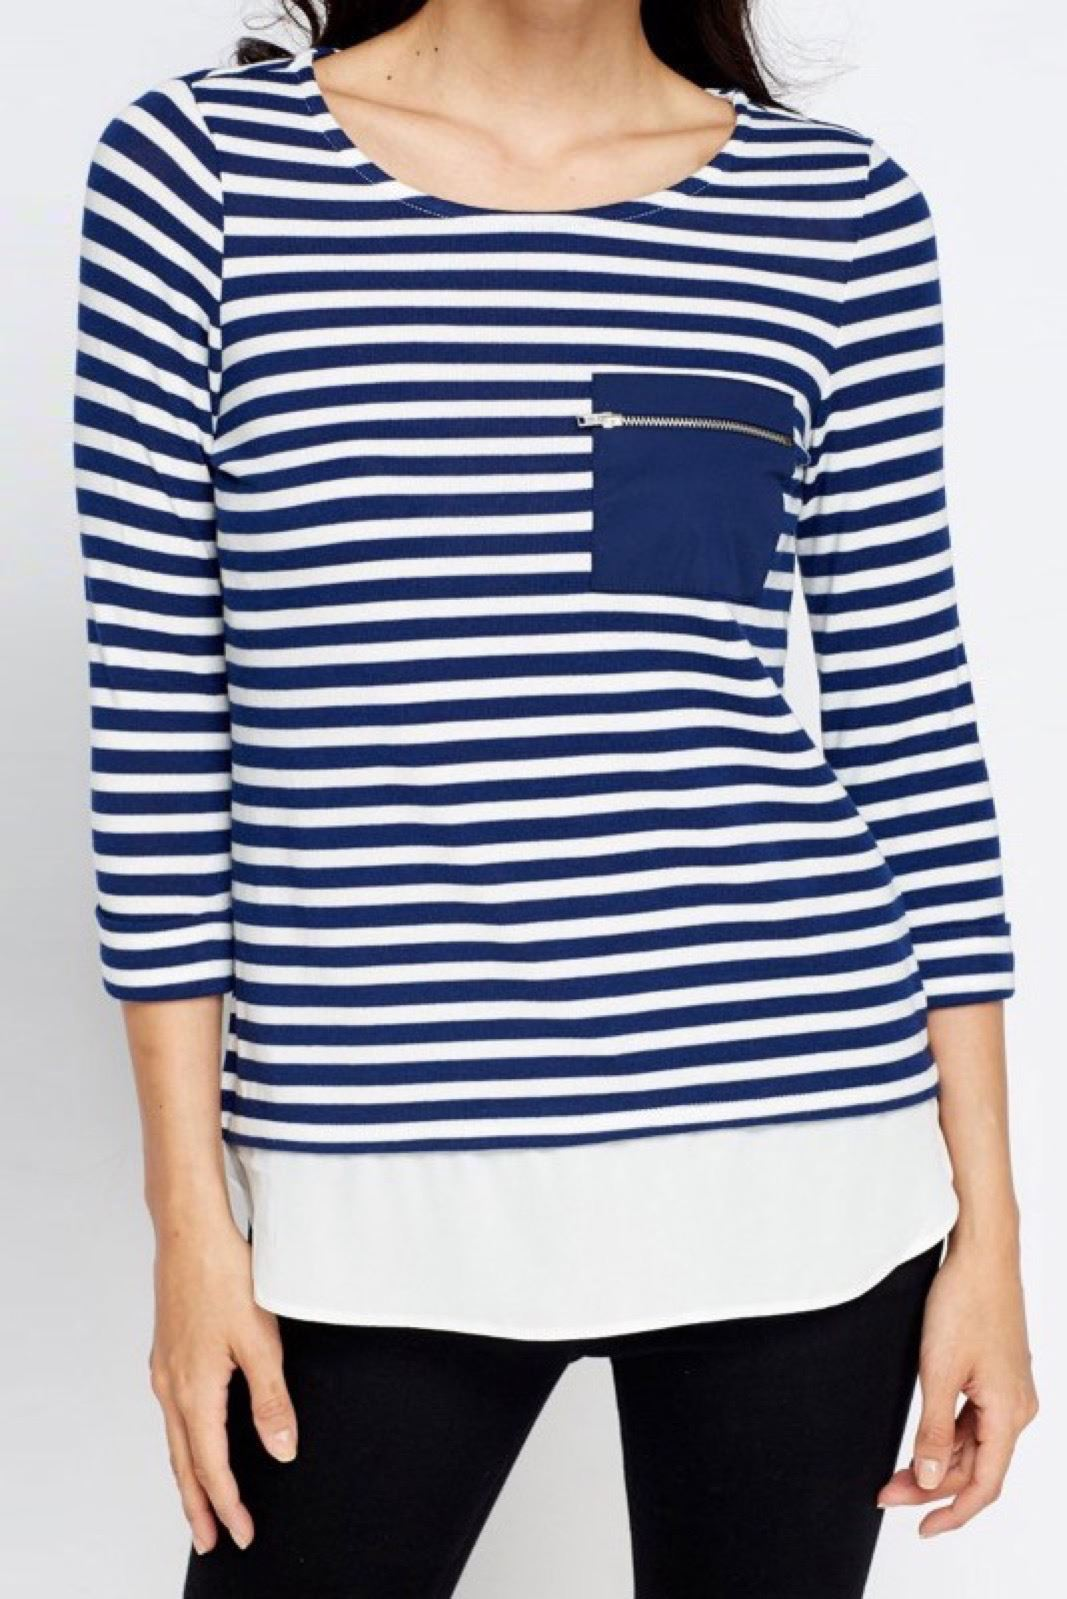 NEW-Ex-Dorothy-Perkins-Stripe-Jersey-Henley-Top-Mock-Layered-Tunic-Size-8-18 thumbnail 8